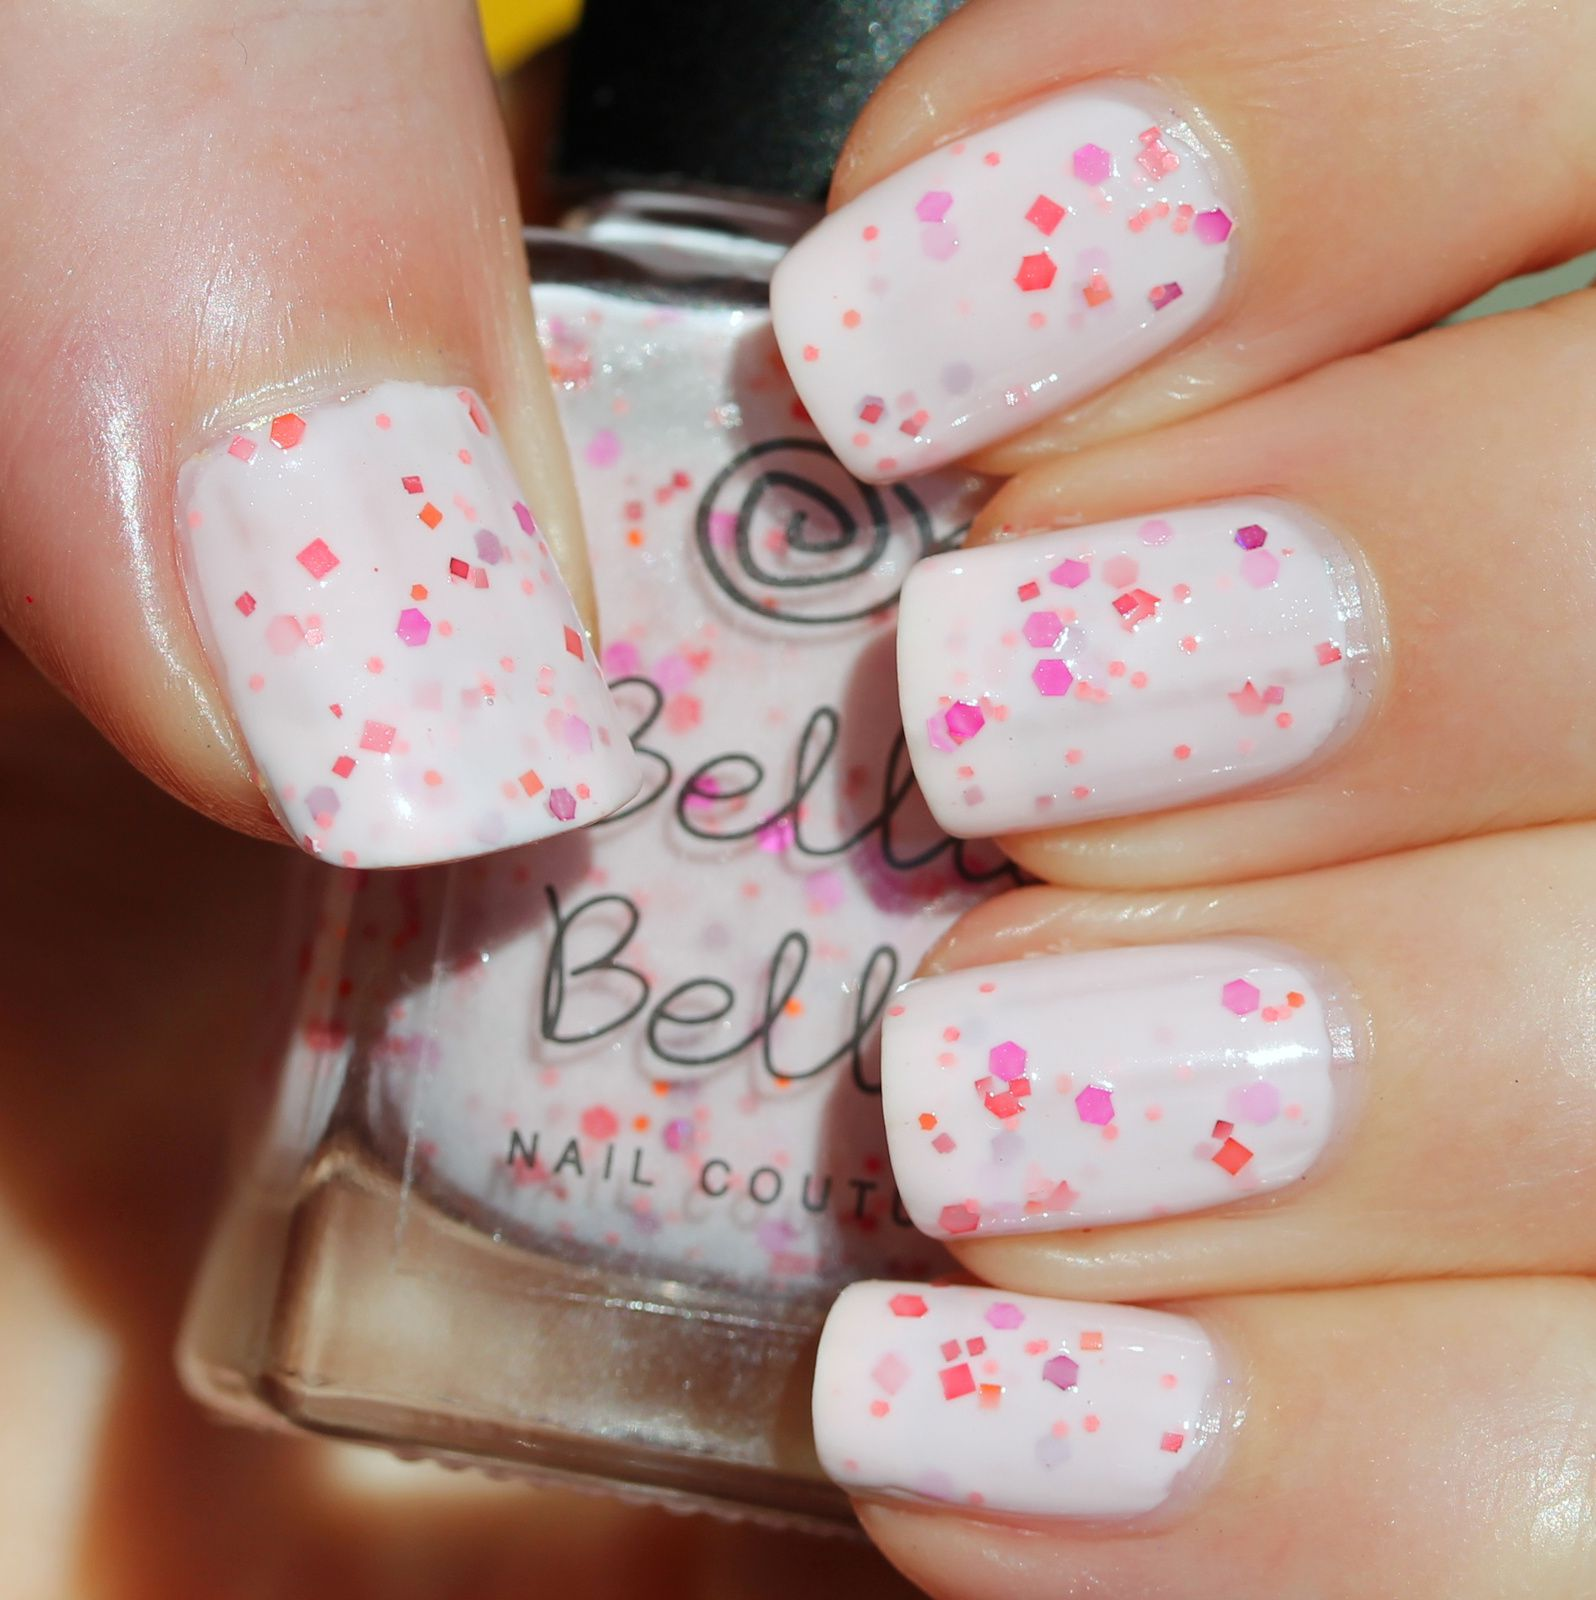 Bella Belle Nail Couture Sweet Tooth (2 coats, no top coat)